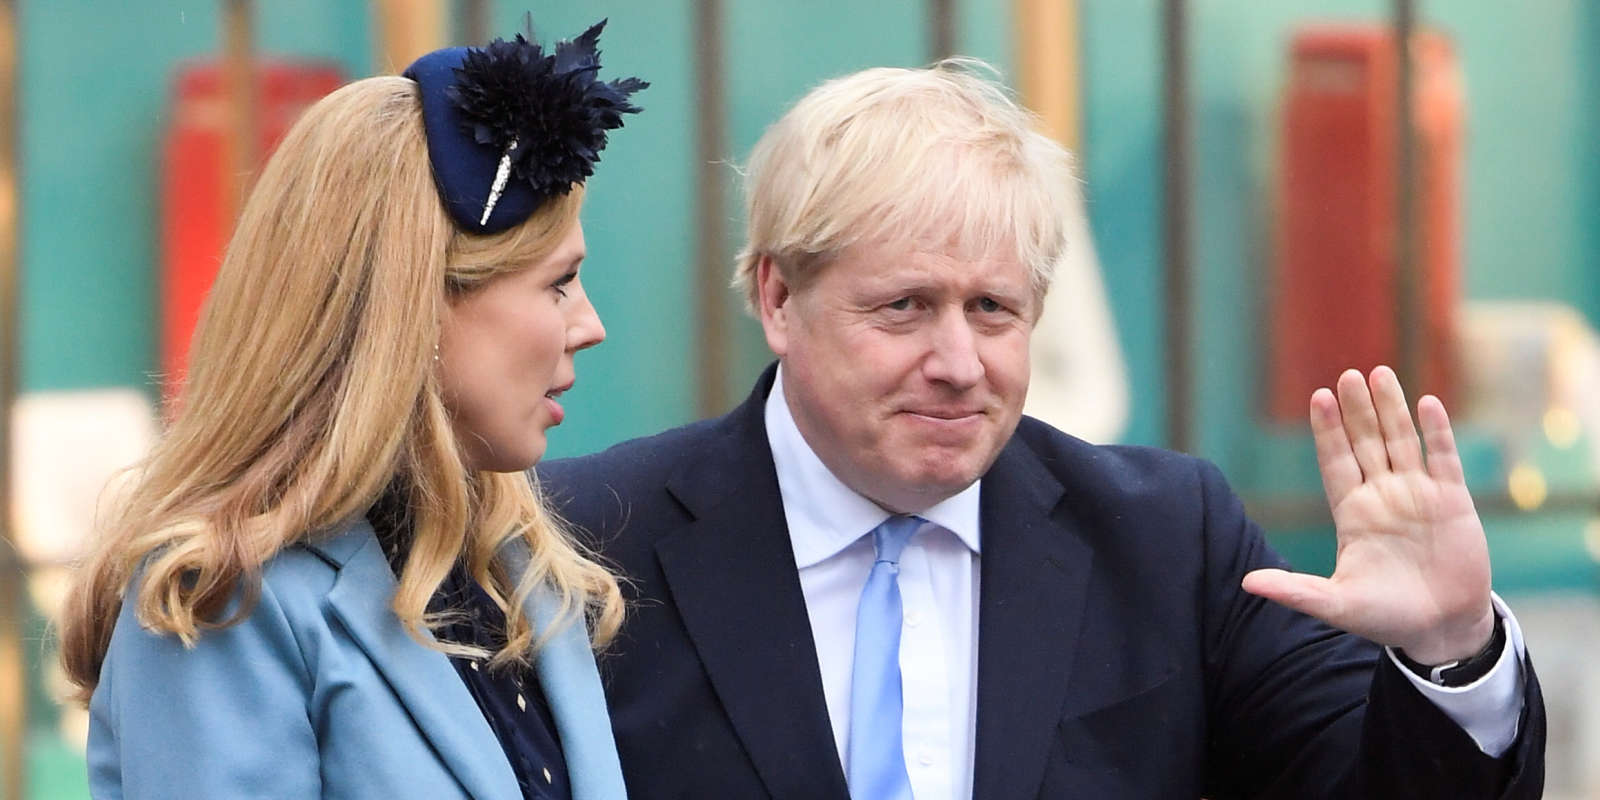 Boris Johnson et sa compagne Carrie Symonds le 9 mars.